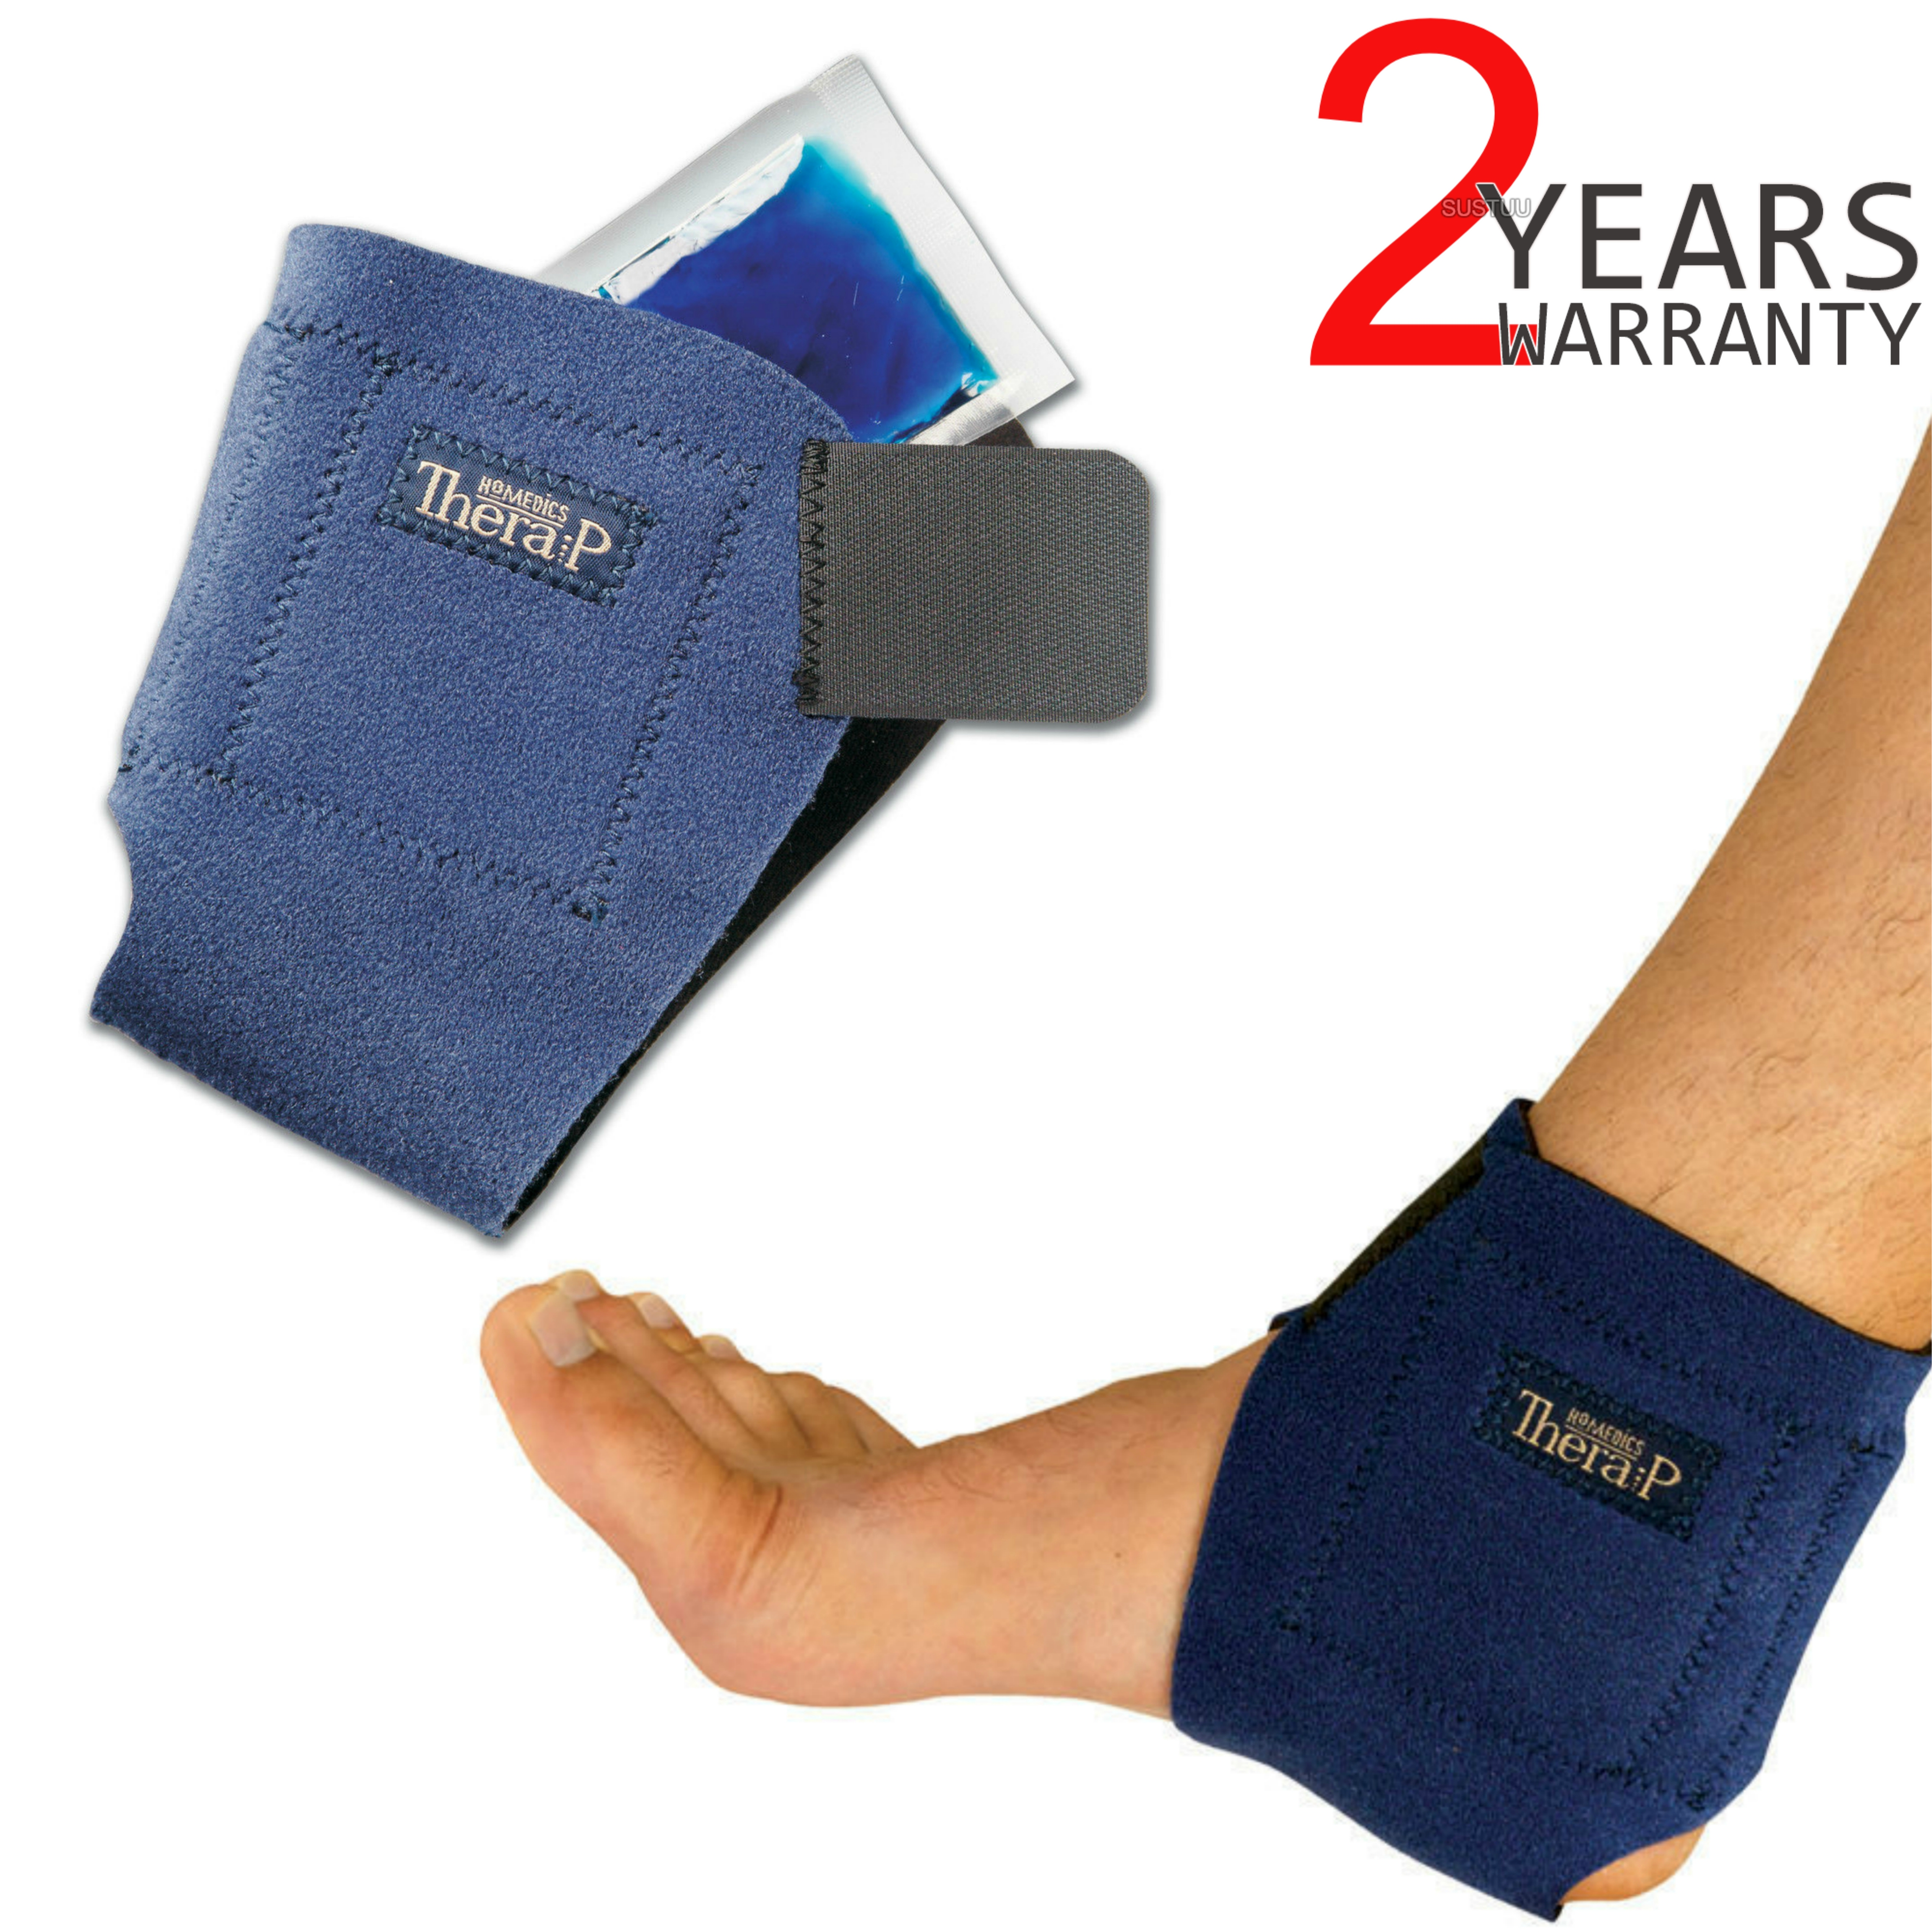 Homedics MW-AHC-0EU Hot & Cold Ankle Wrap | Foot Guard Heating Magnetic Therapy